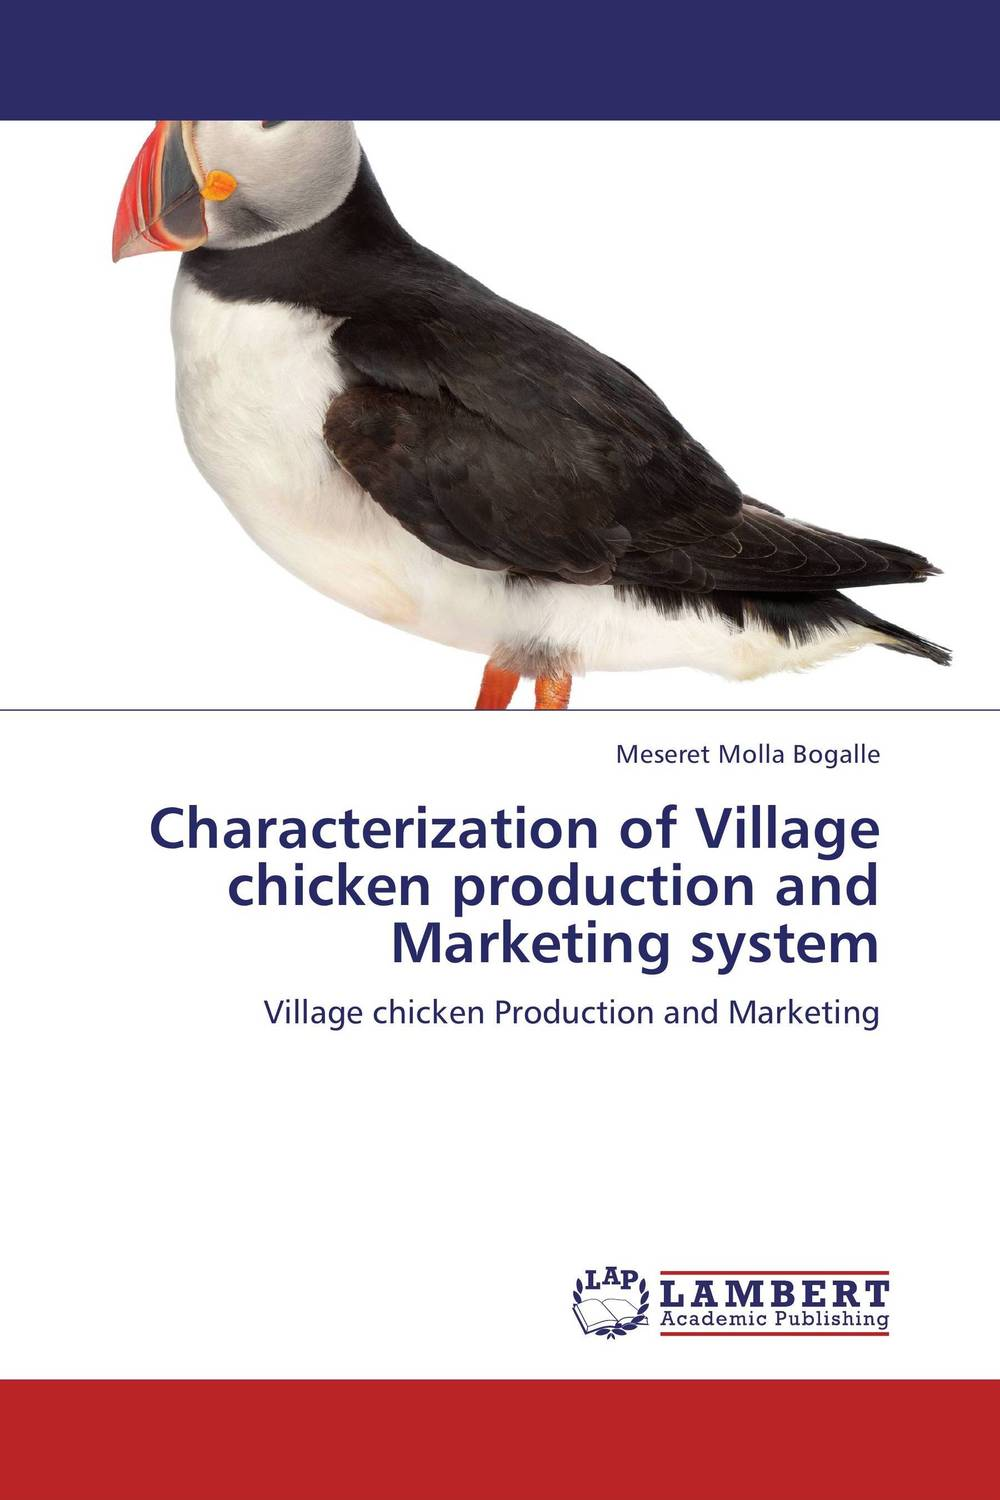 Characterization of Village chicken production and Marketing system tapan kumar dutta and parimal roychoudhury diagnosis and characterization of bacterial pathogens in animal